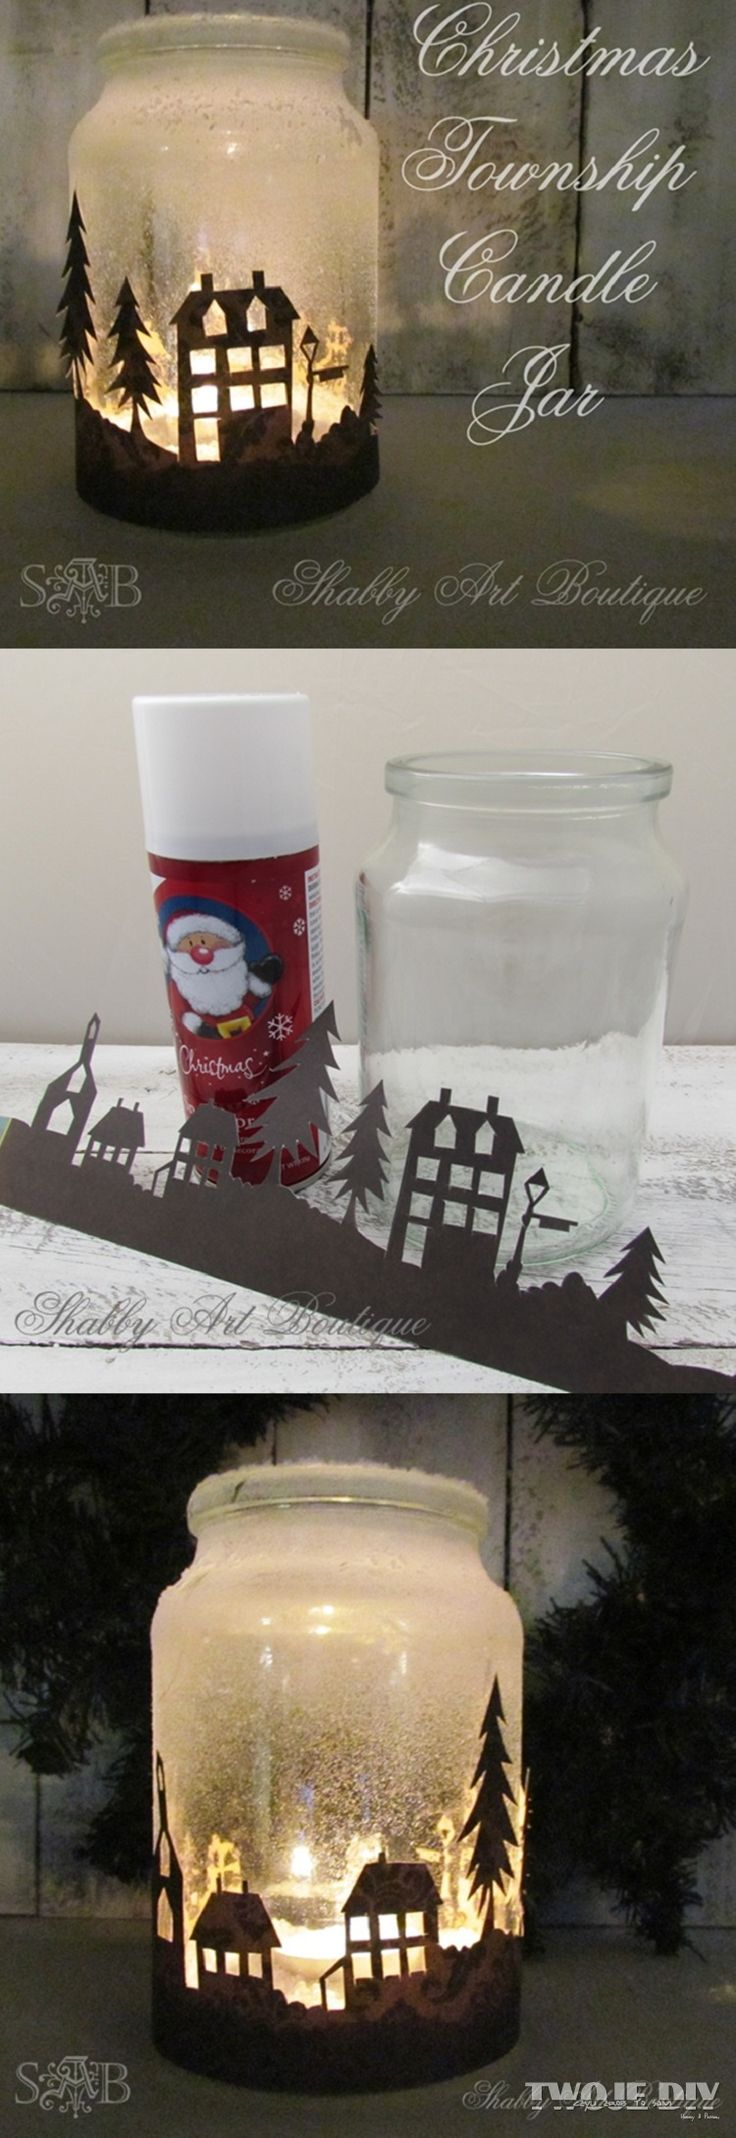 Christmas Decorating Decorations Crafts and Handmade :: Quick and easy candle jar that will look amazing when illuminated at night.